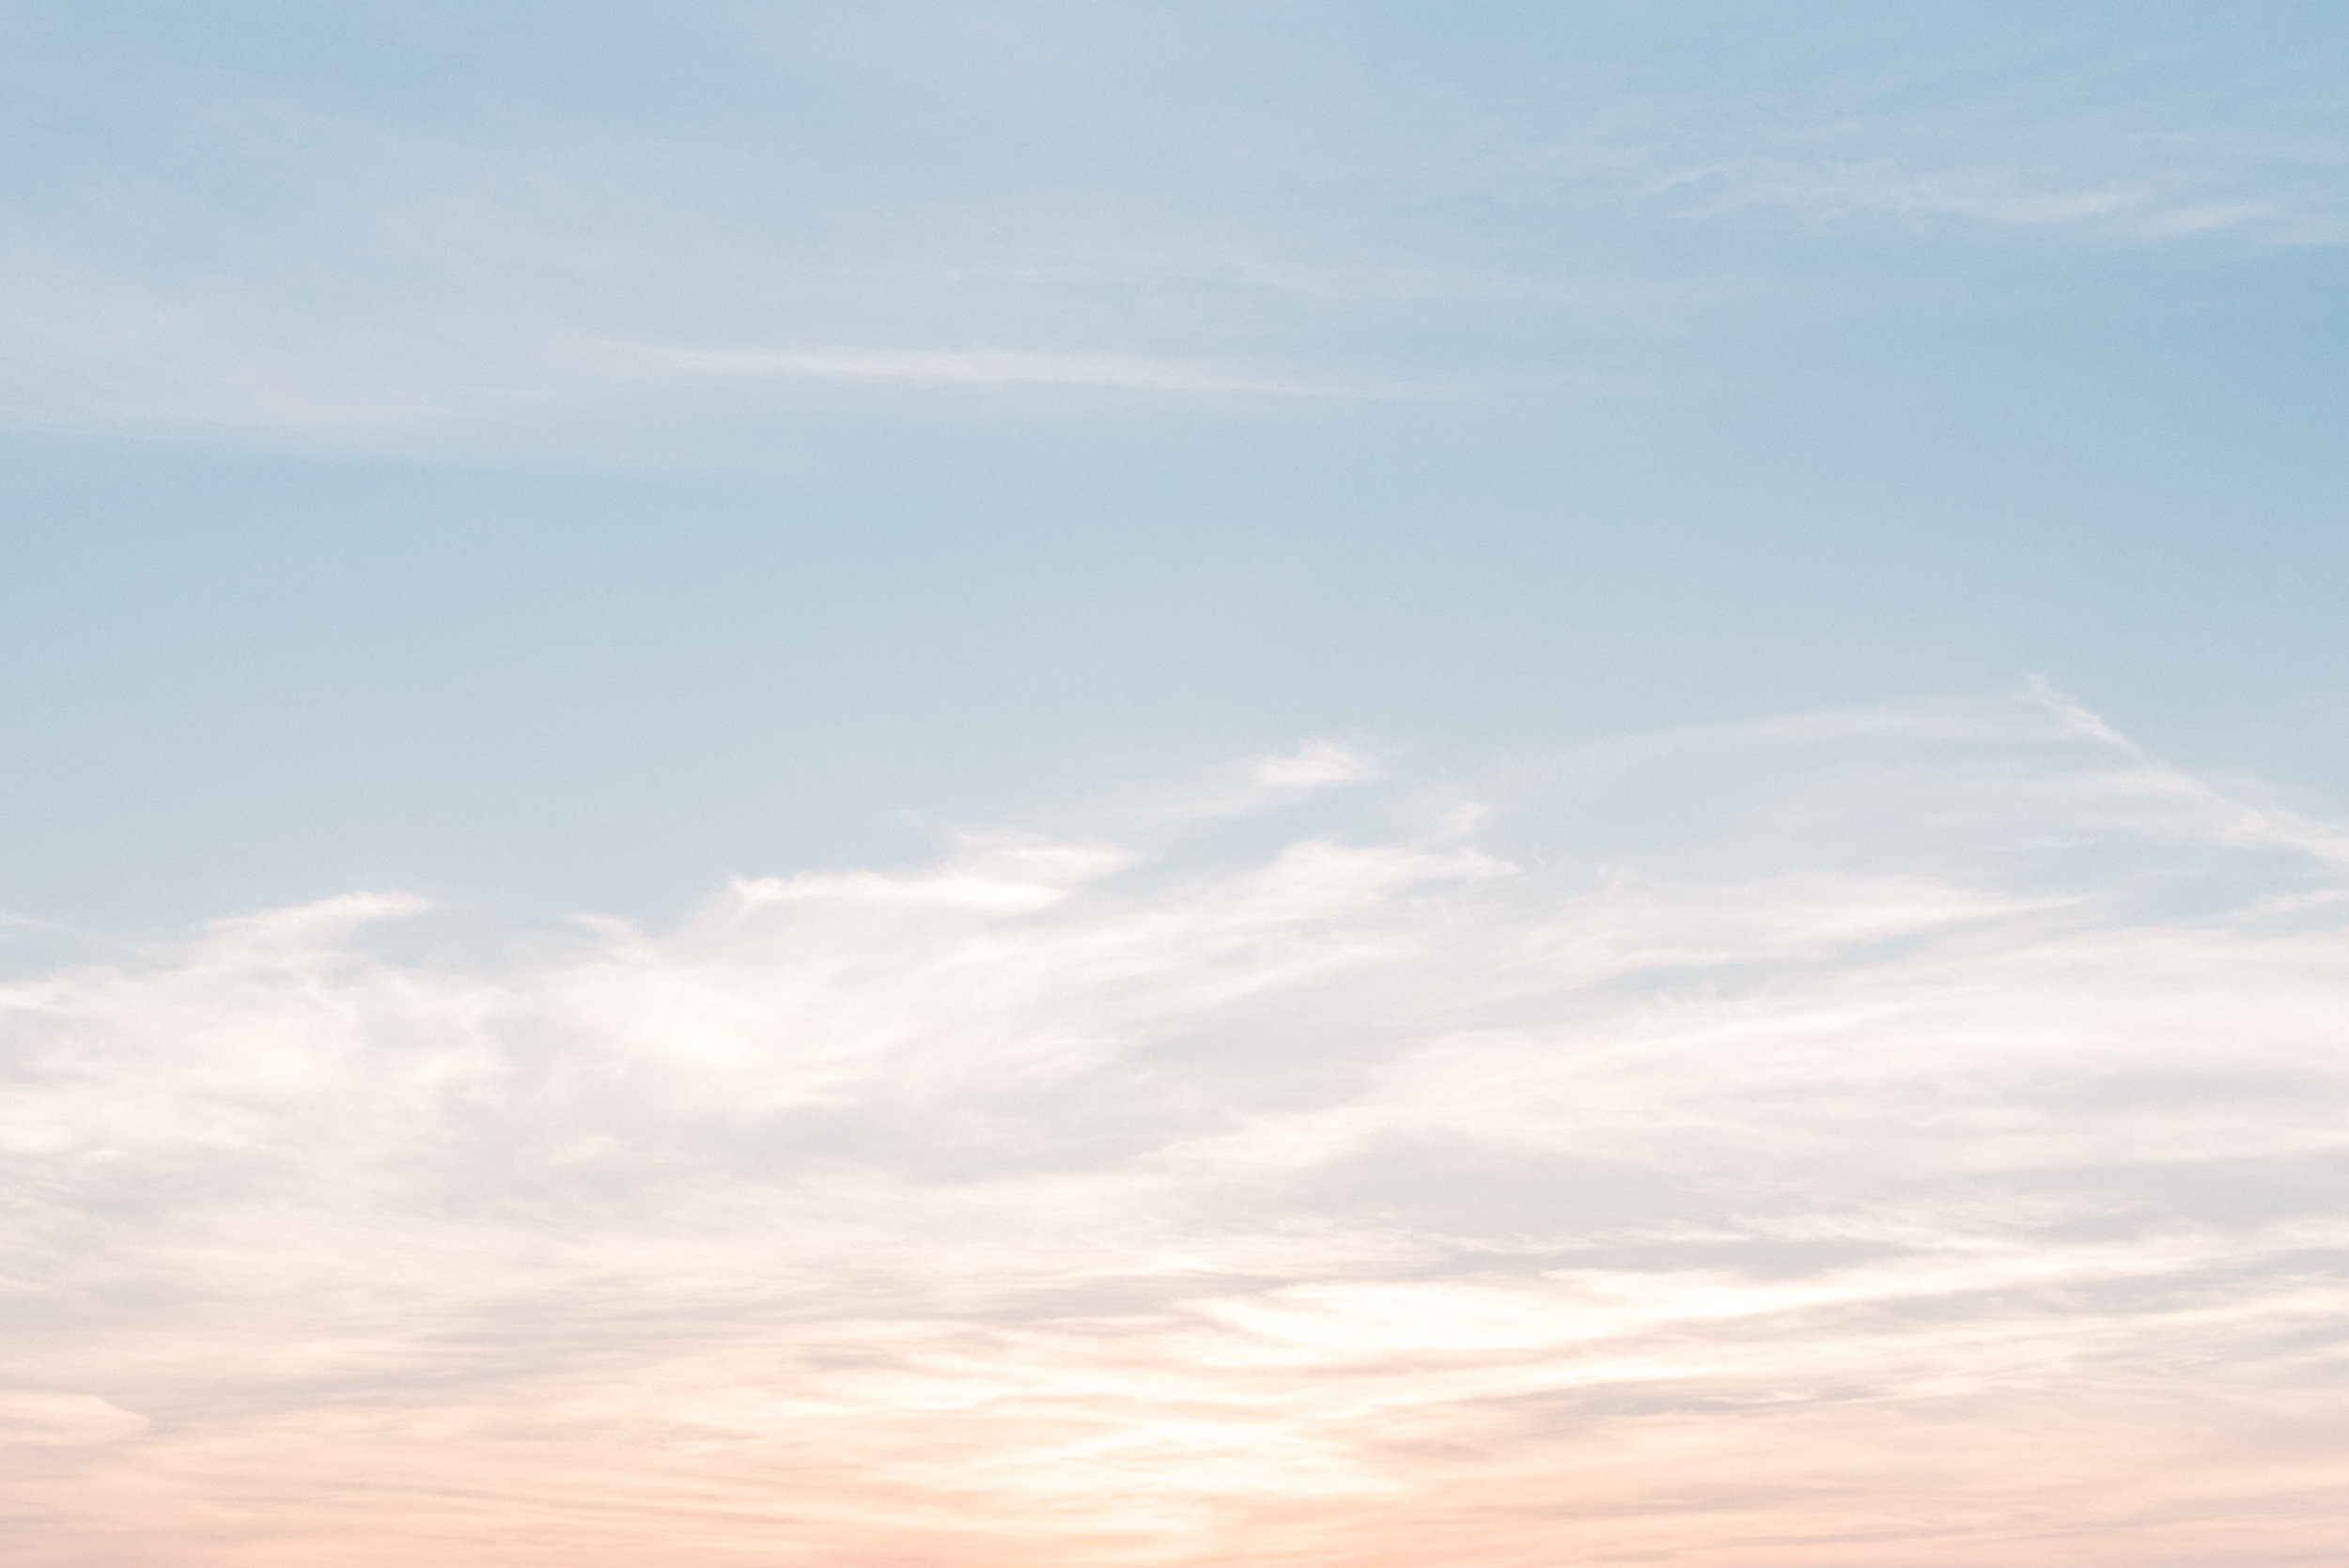 We love capturing a beautiful ethereal sky on your wedding day, setting the mood and sending you back in time.